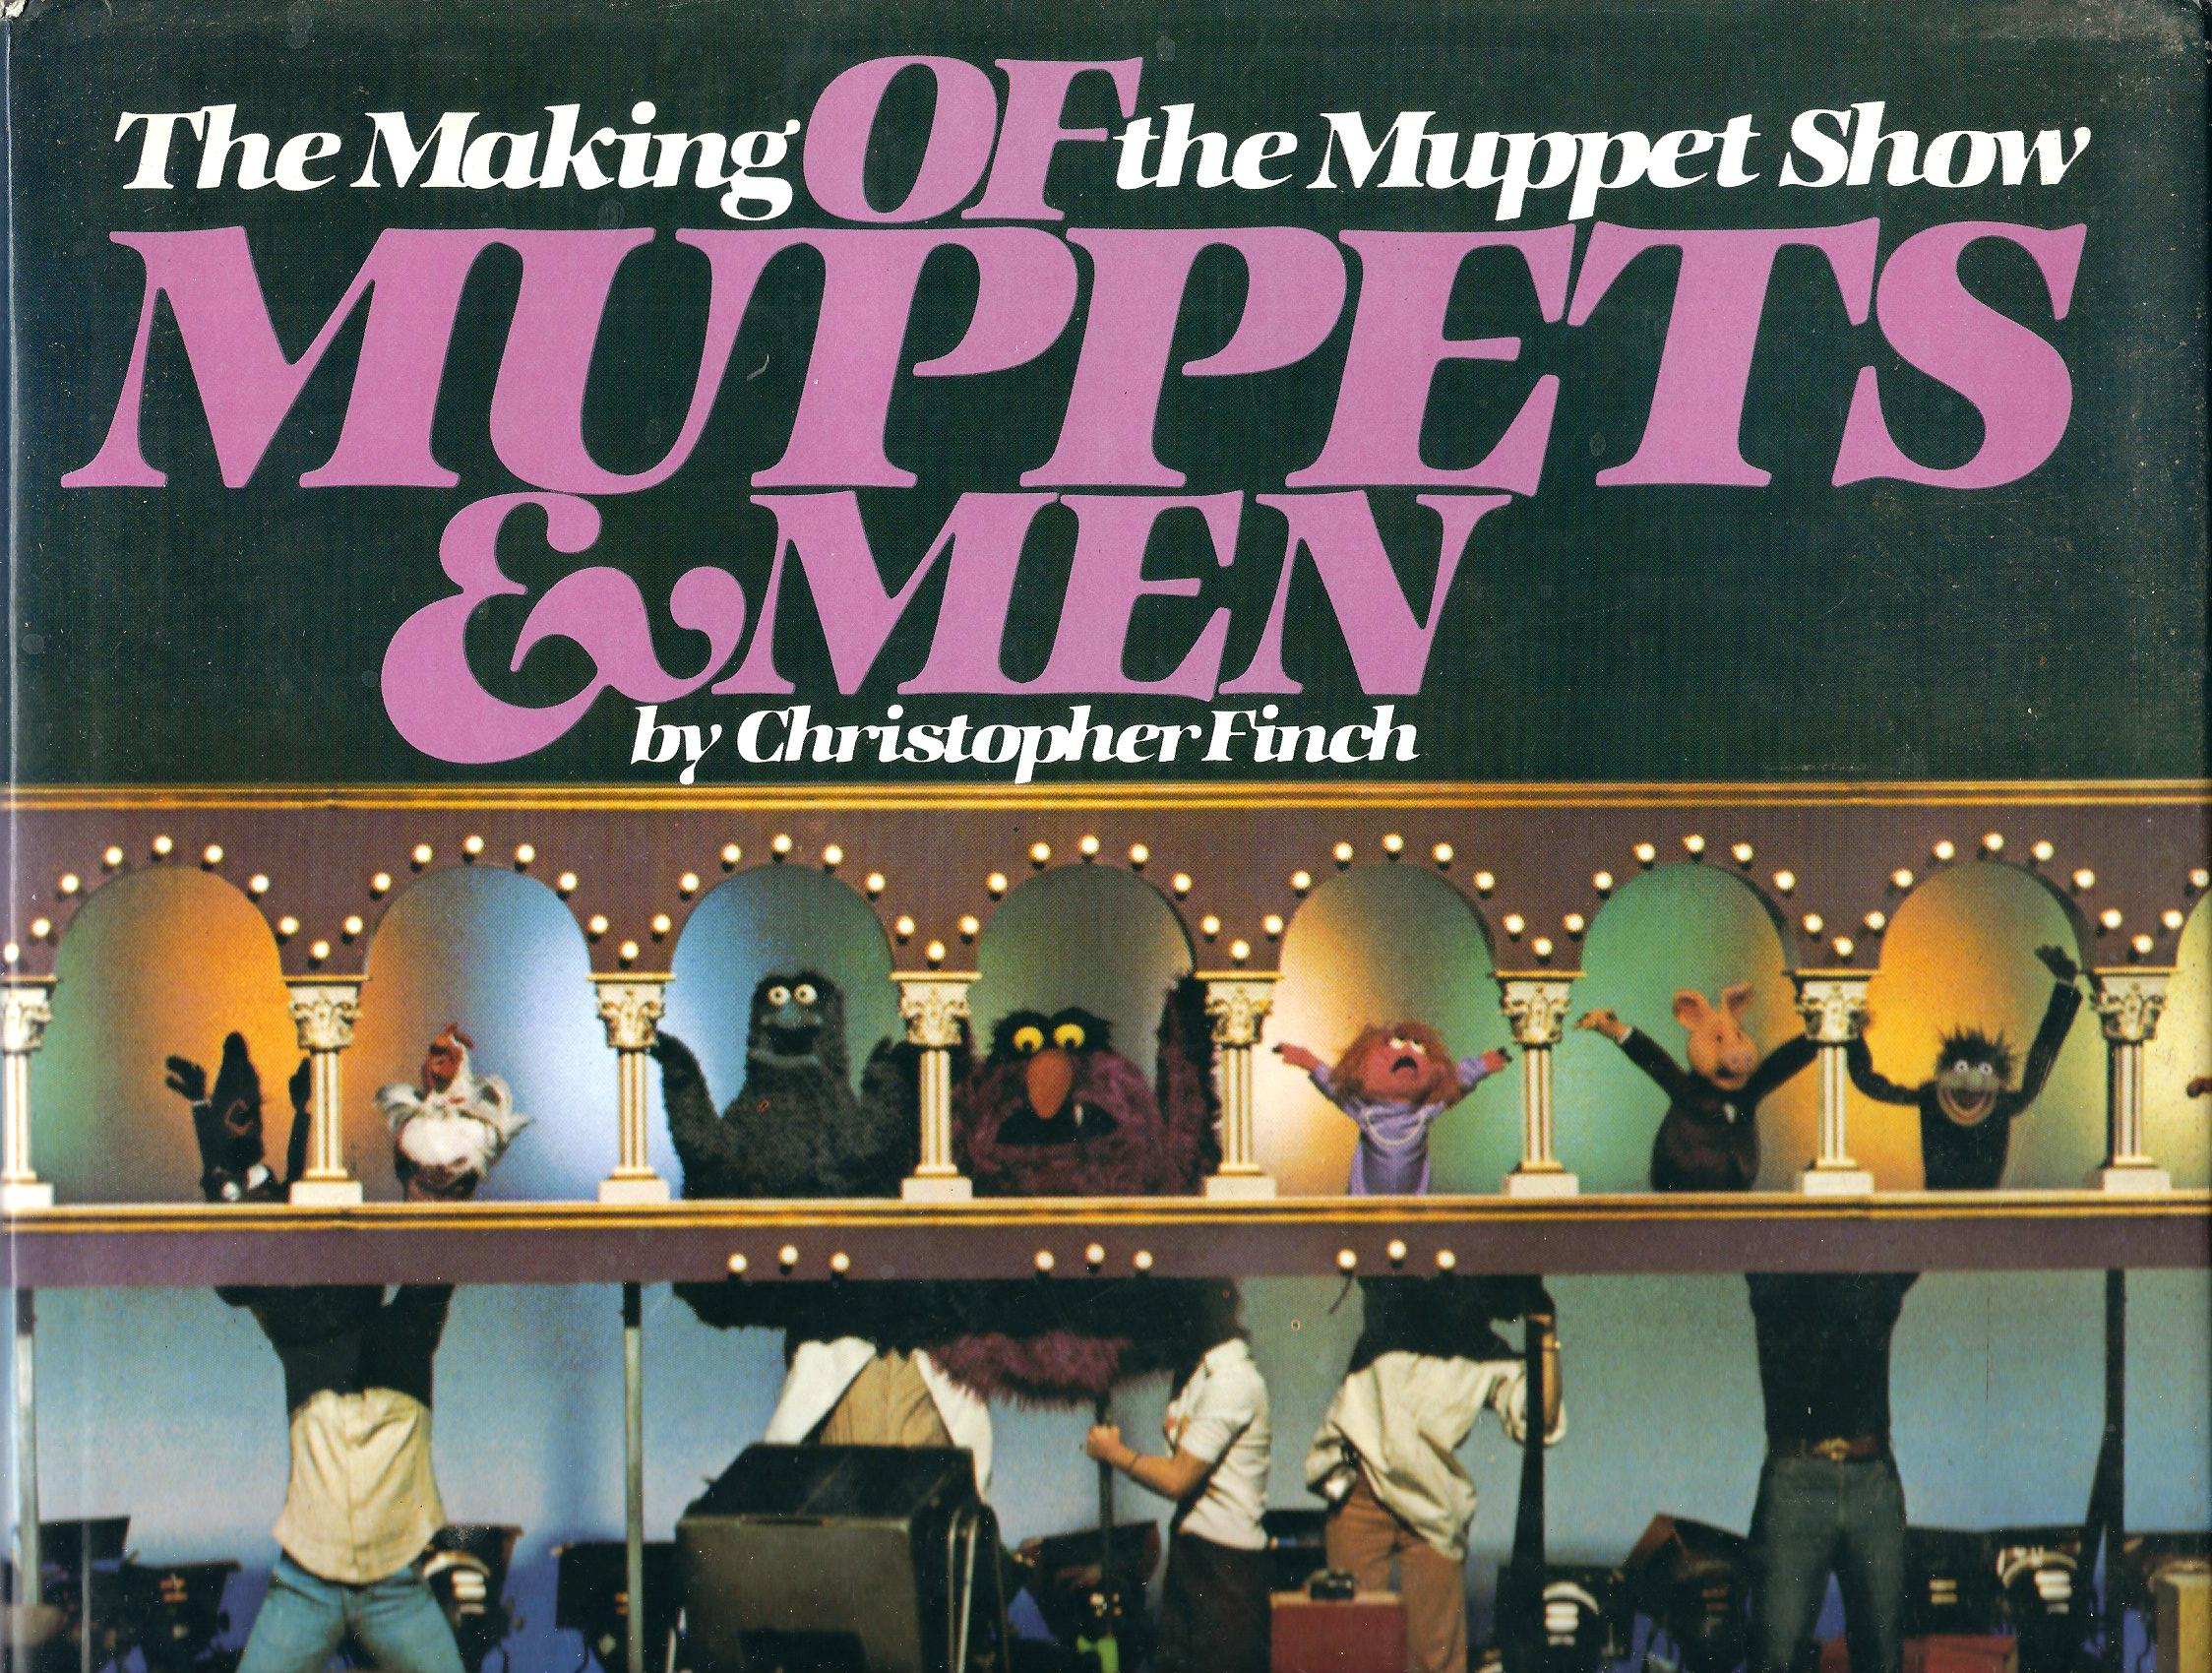 Of Muppets & Men - The Making of the Muppet Show